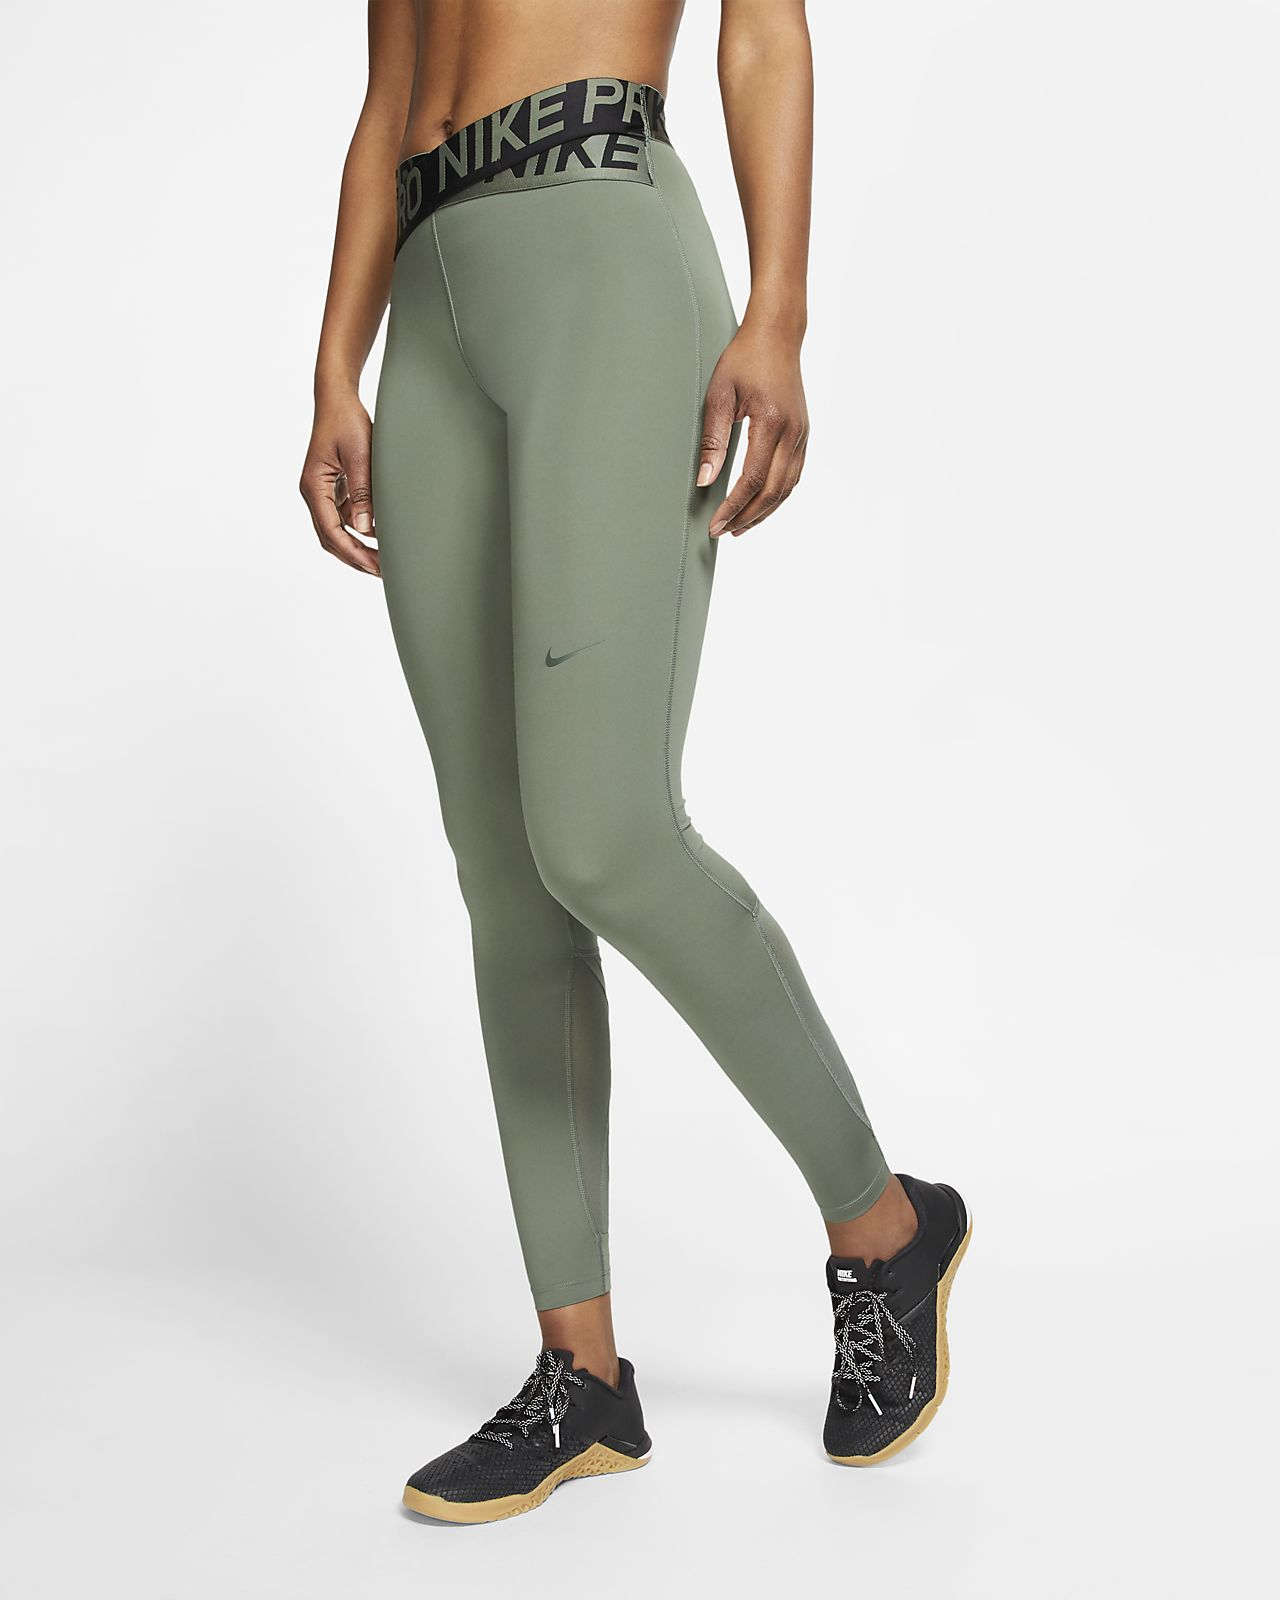 Nike Pro Intertwist Women's Tights